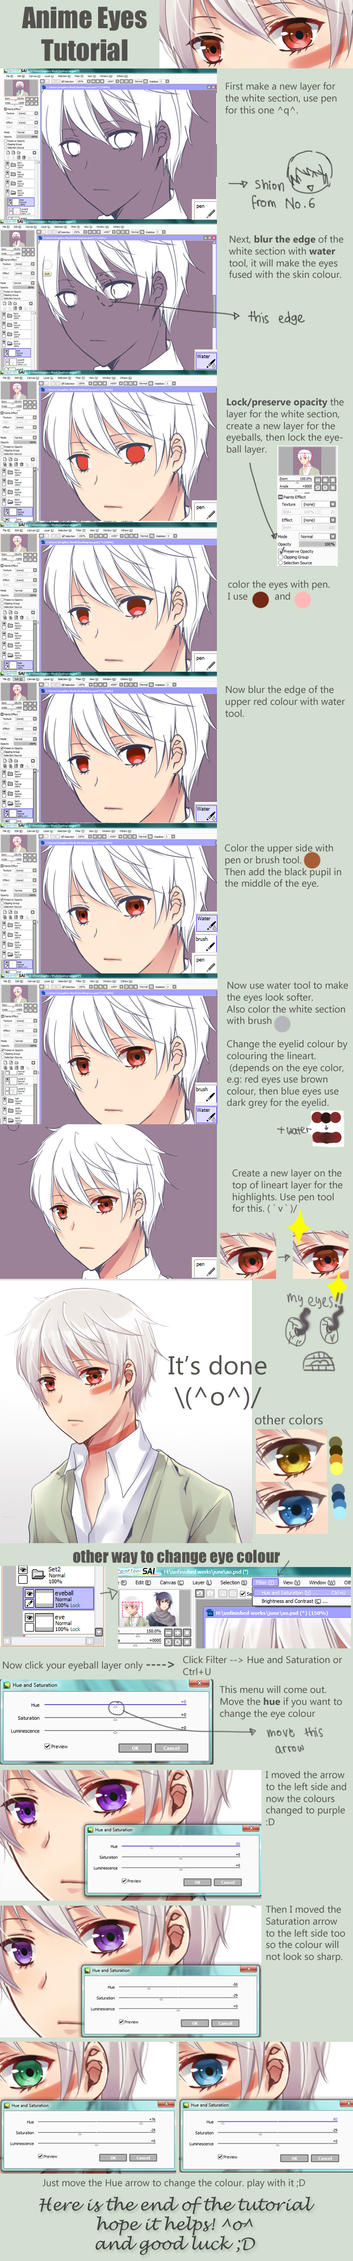 Anime eyes Tutorial by jaerika